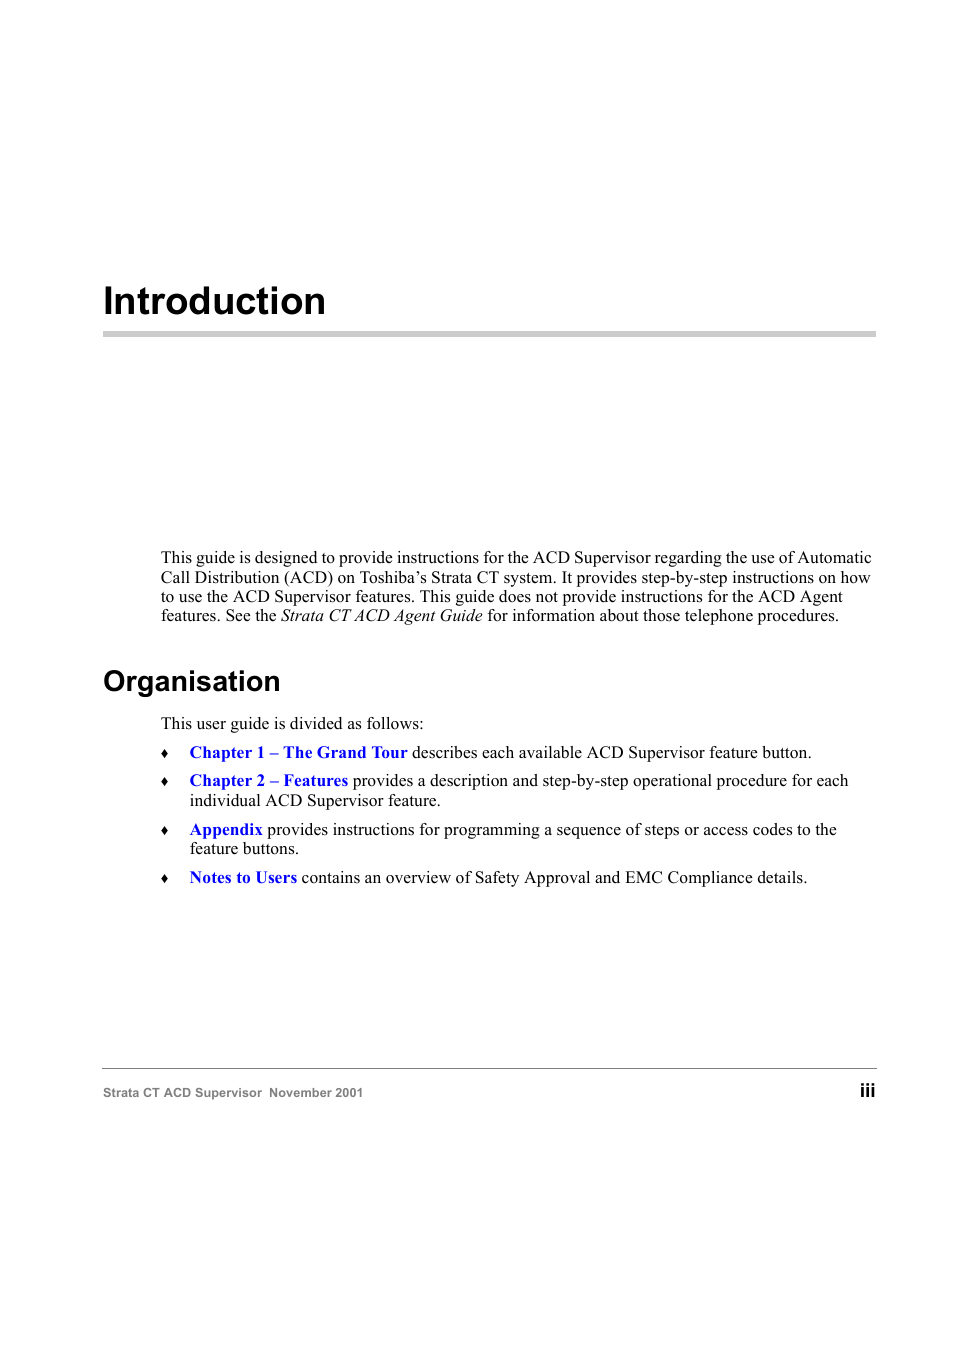 Introduction, Organisation | Toshiba Strata CT Digital Business Telephone  Solutions User Manual | Page 5 / 41